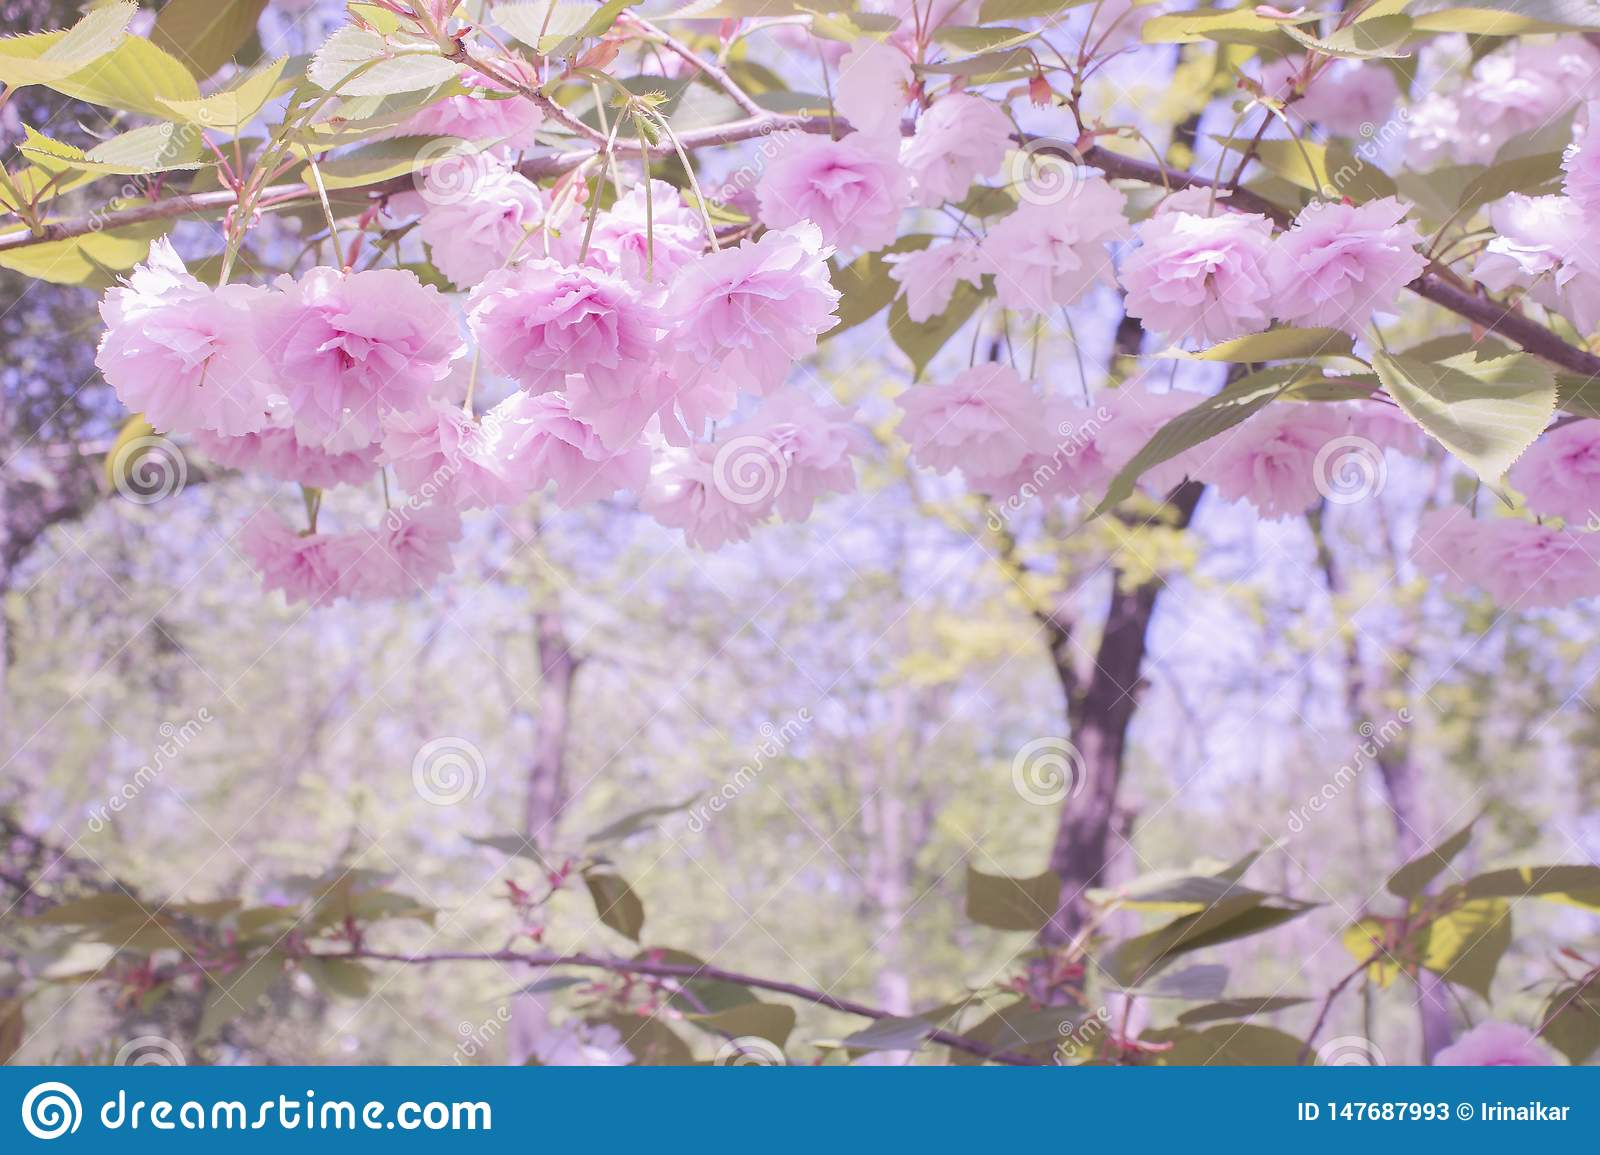 Fabulous beautiful landscape. Soft pink flowers of Japanese sakura and branches with leaves.